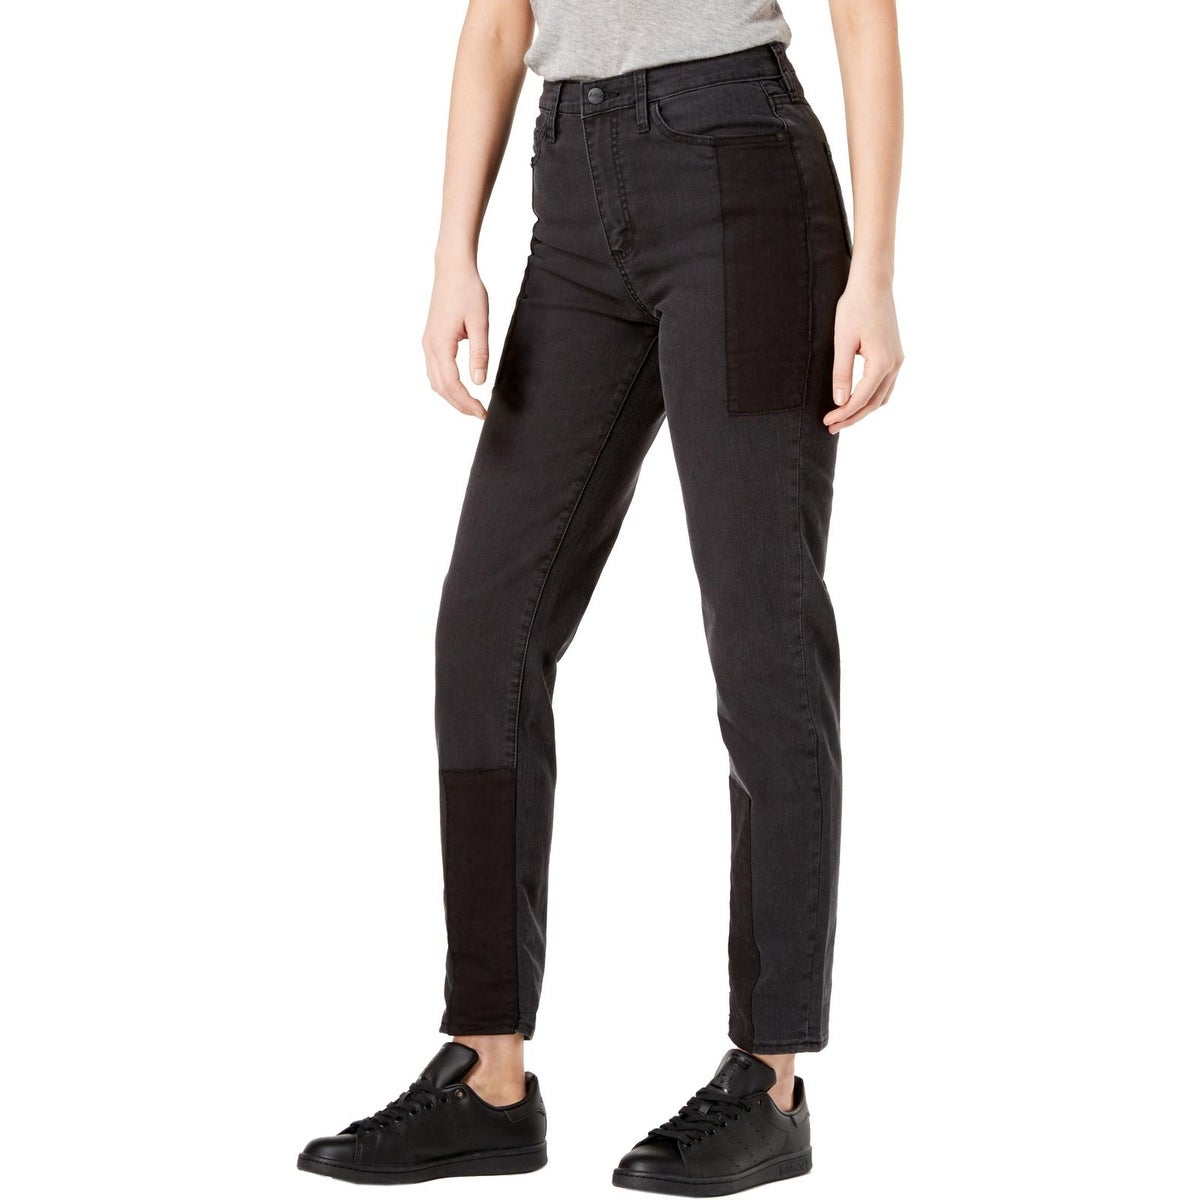 08e39892 Buffalo David Bitton Pants | Find Great Women's Clothing Deals Shopping at  Overstock